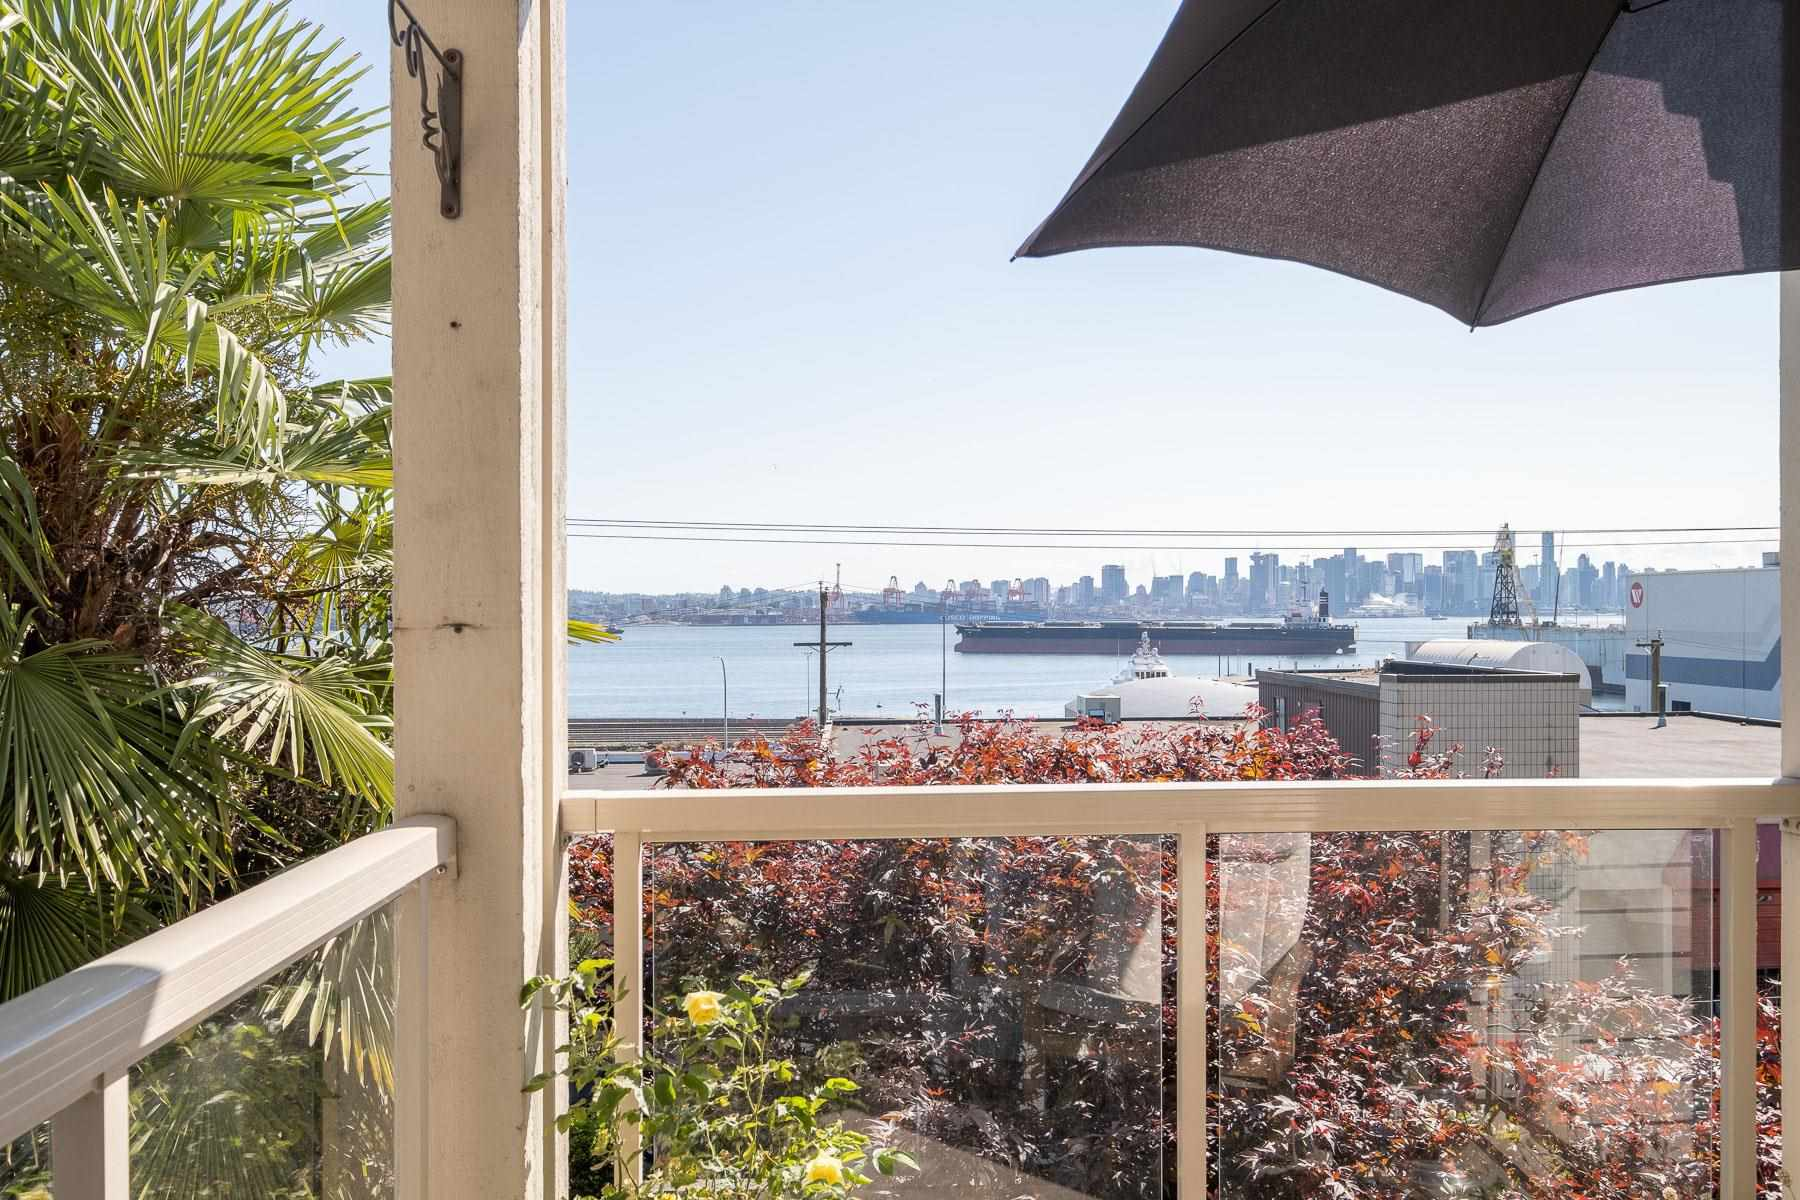 205 333 E 1ST STREET - Lower Lonsdale Apartment/Condo for sale, 1 Bedroom (R2618010) - #26